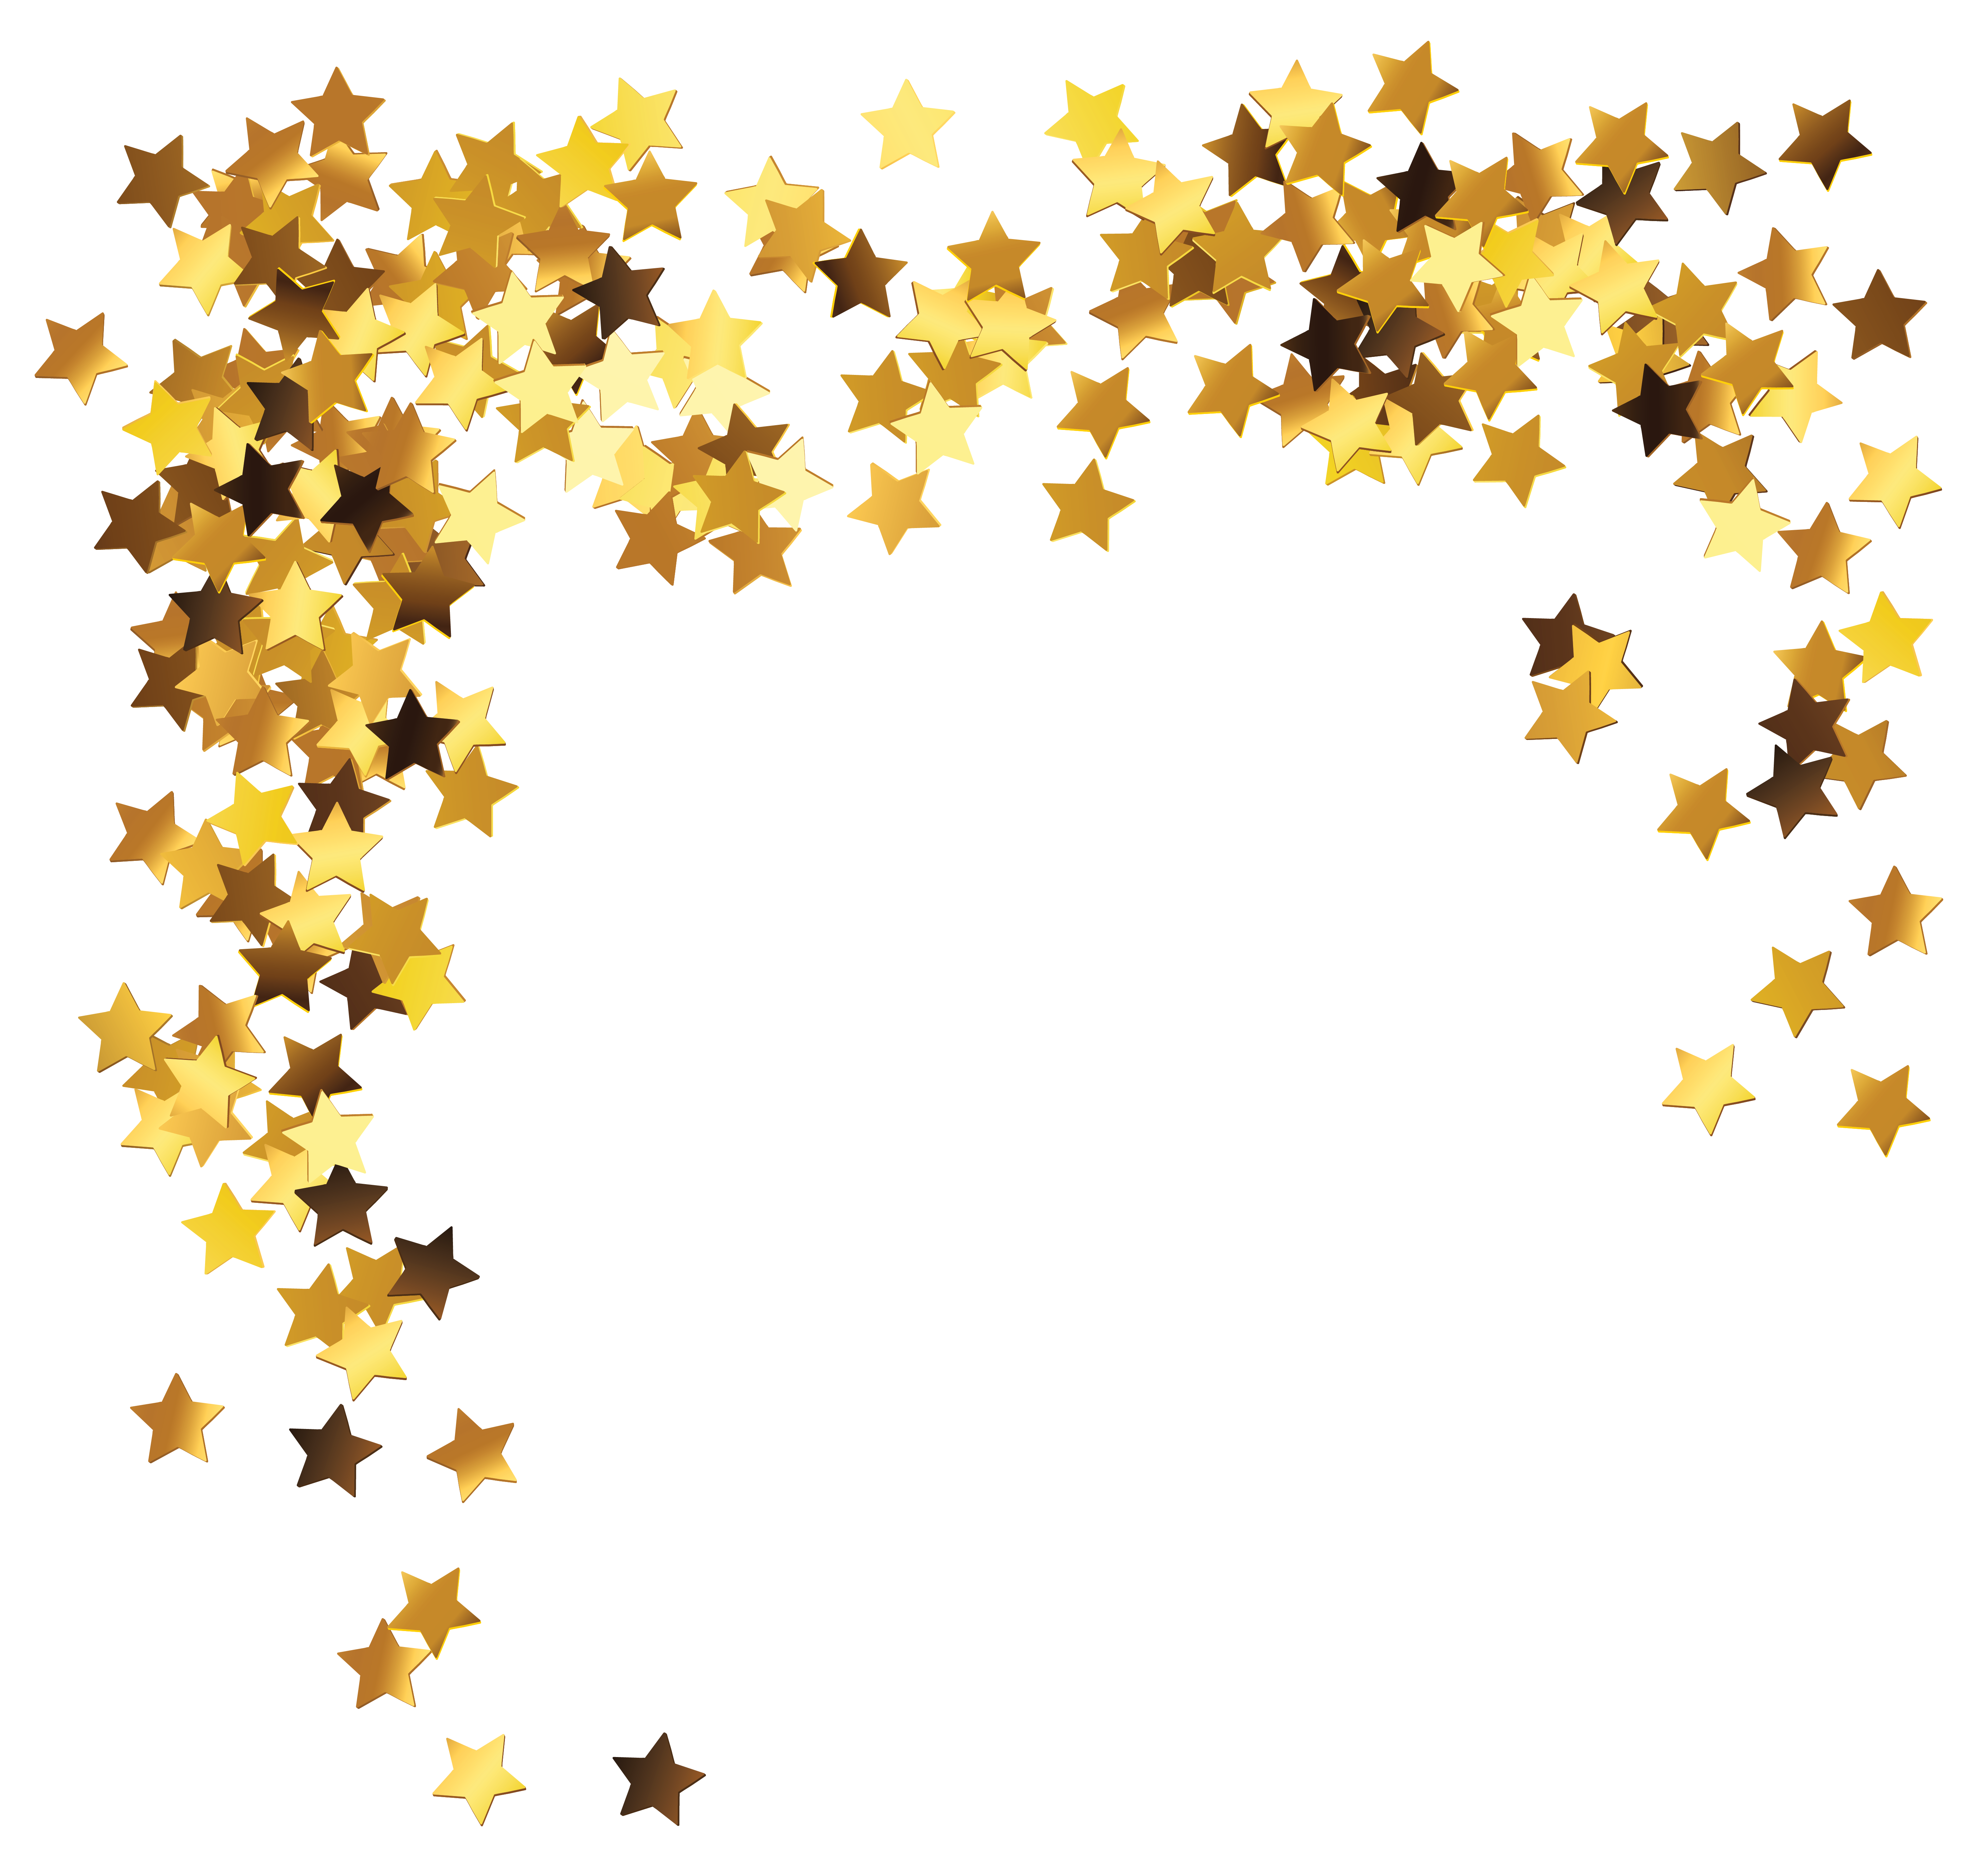 Decoration clipart picture gallery. Gold stars png clipart free download